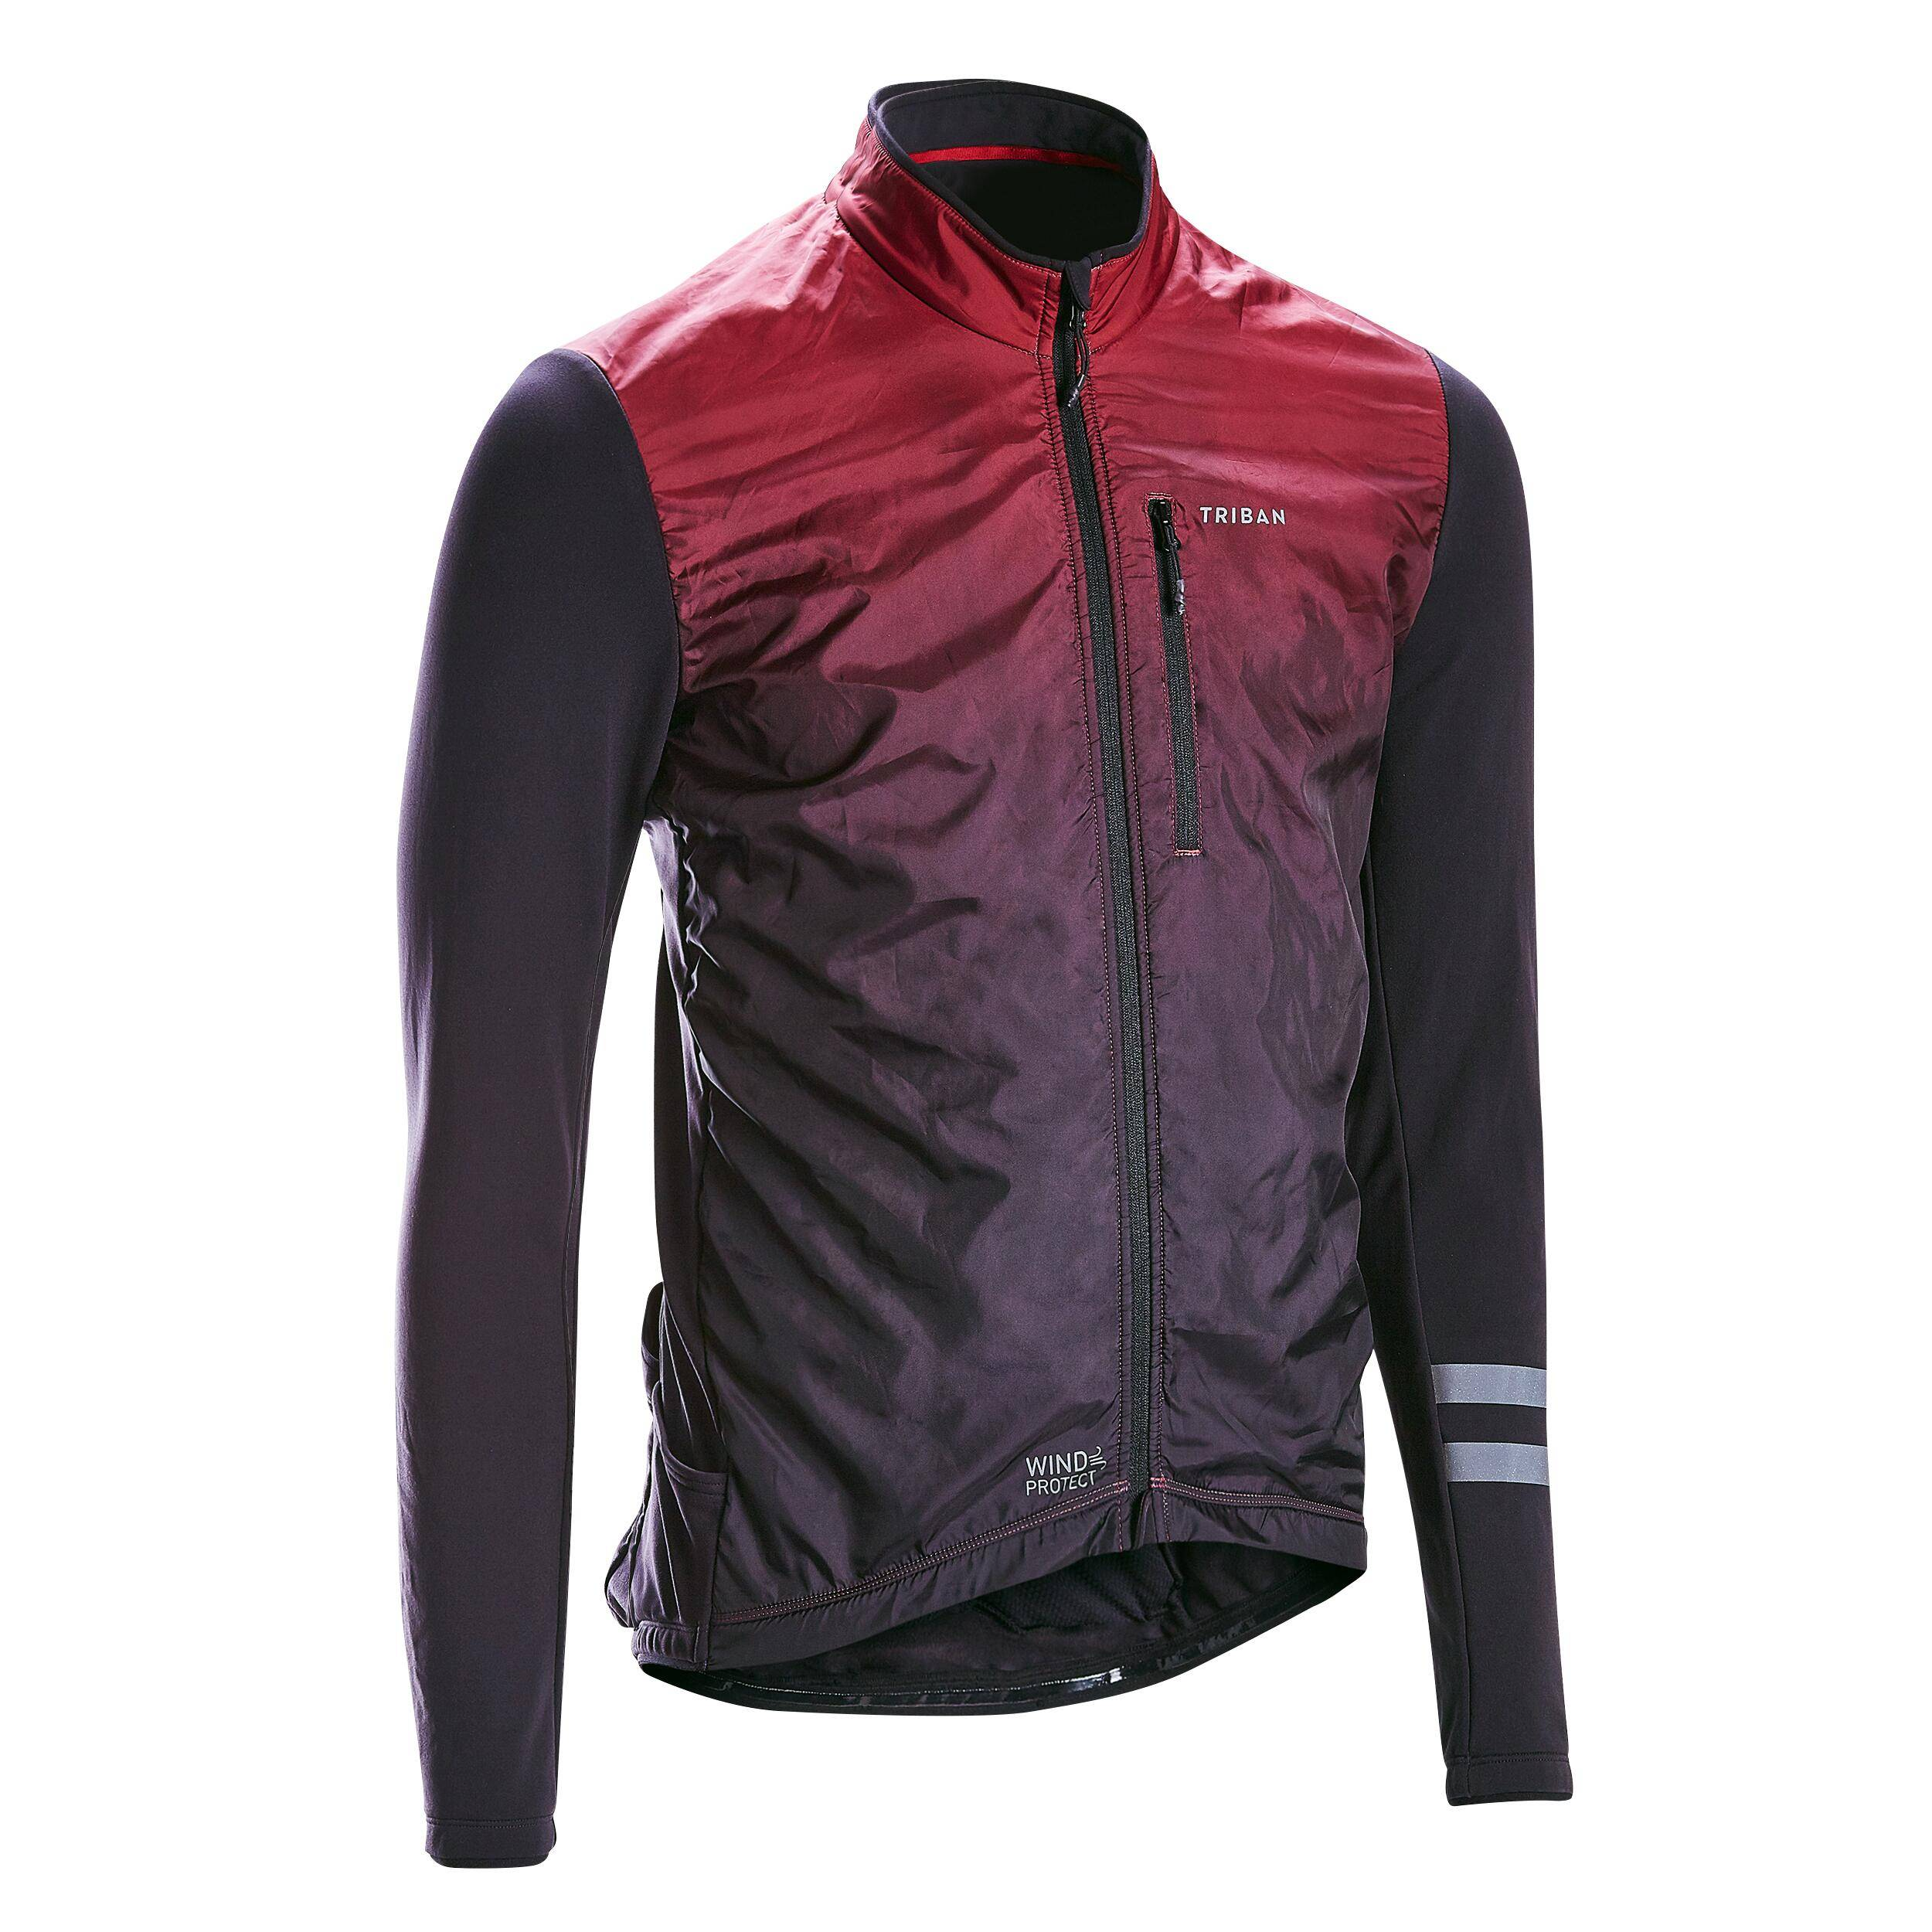 Triban MAILLOT VELO ROUTE MANCHES LONGUES HOMME RC500 SHIELD BORDEAUX - Triban